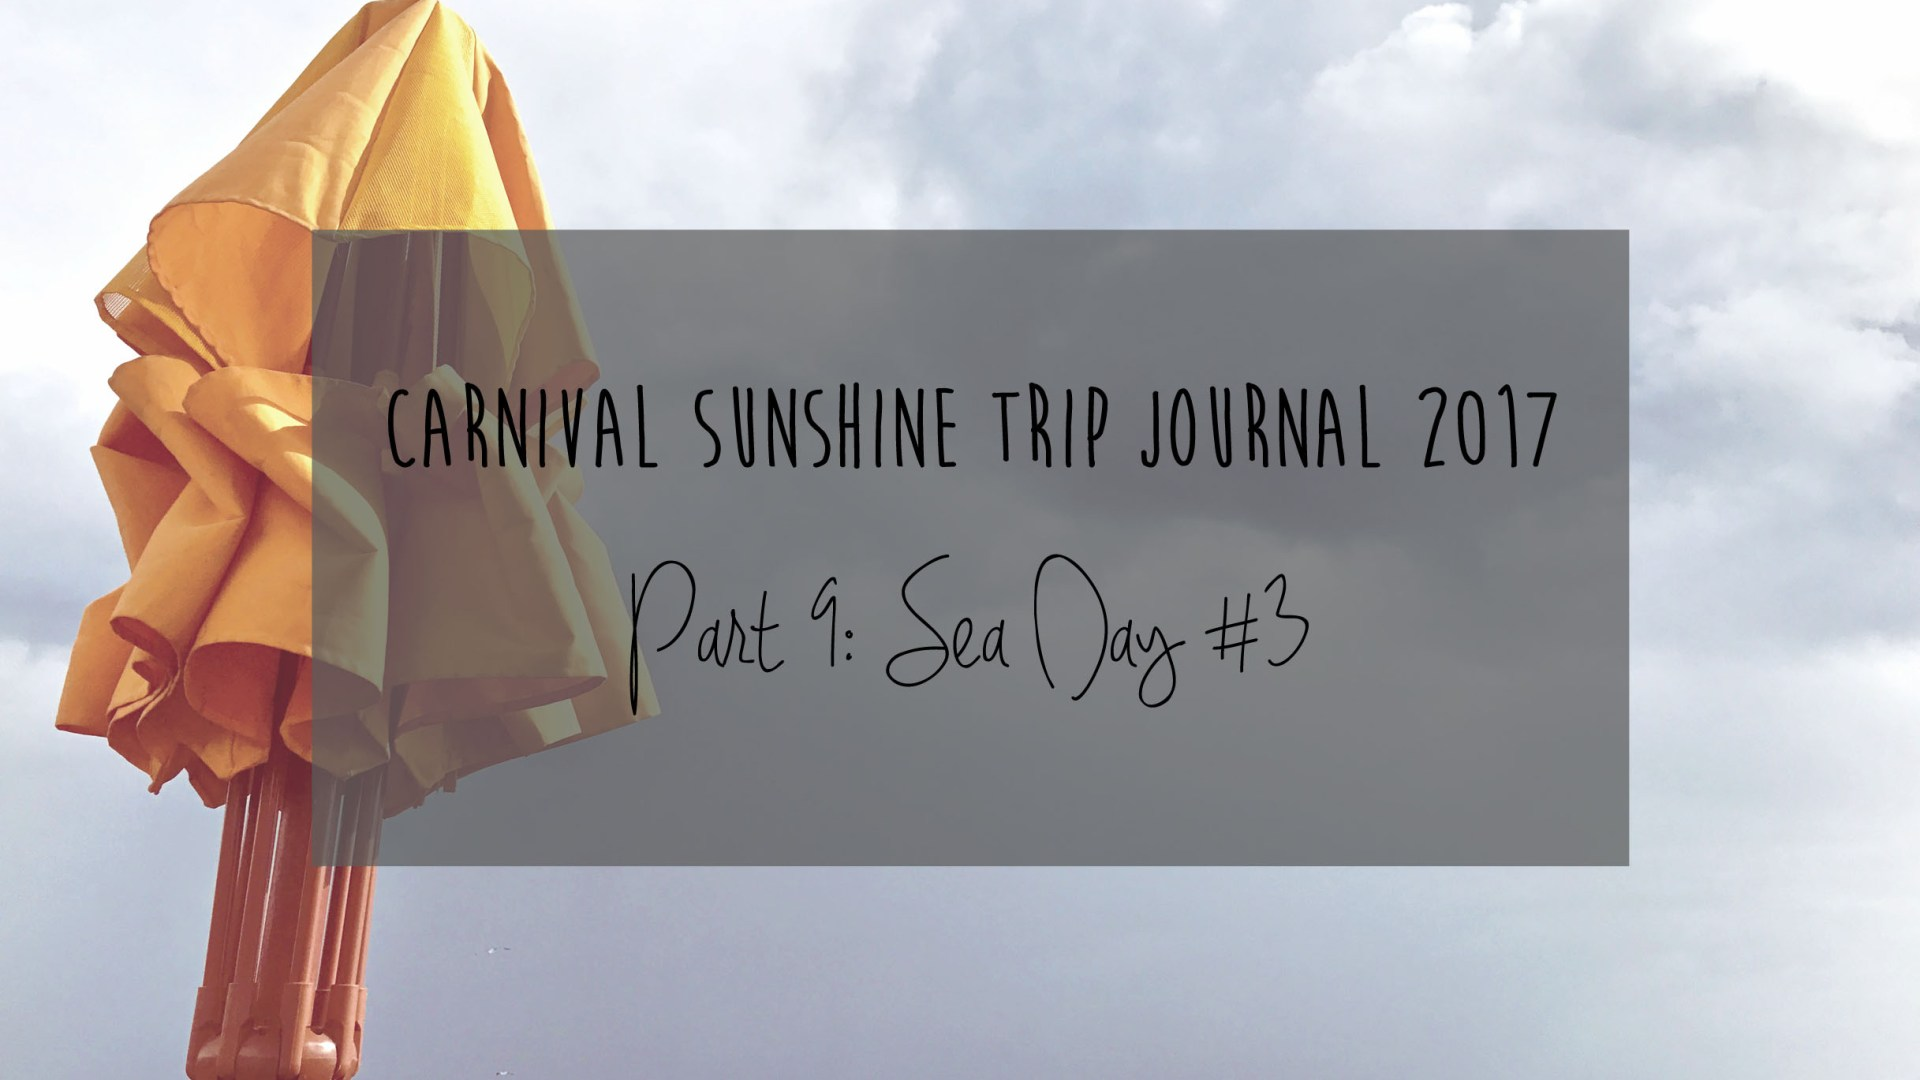 Carnival Sunshine Trip Journal: Part 9 – Sea Day #3